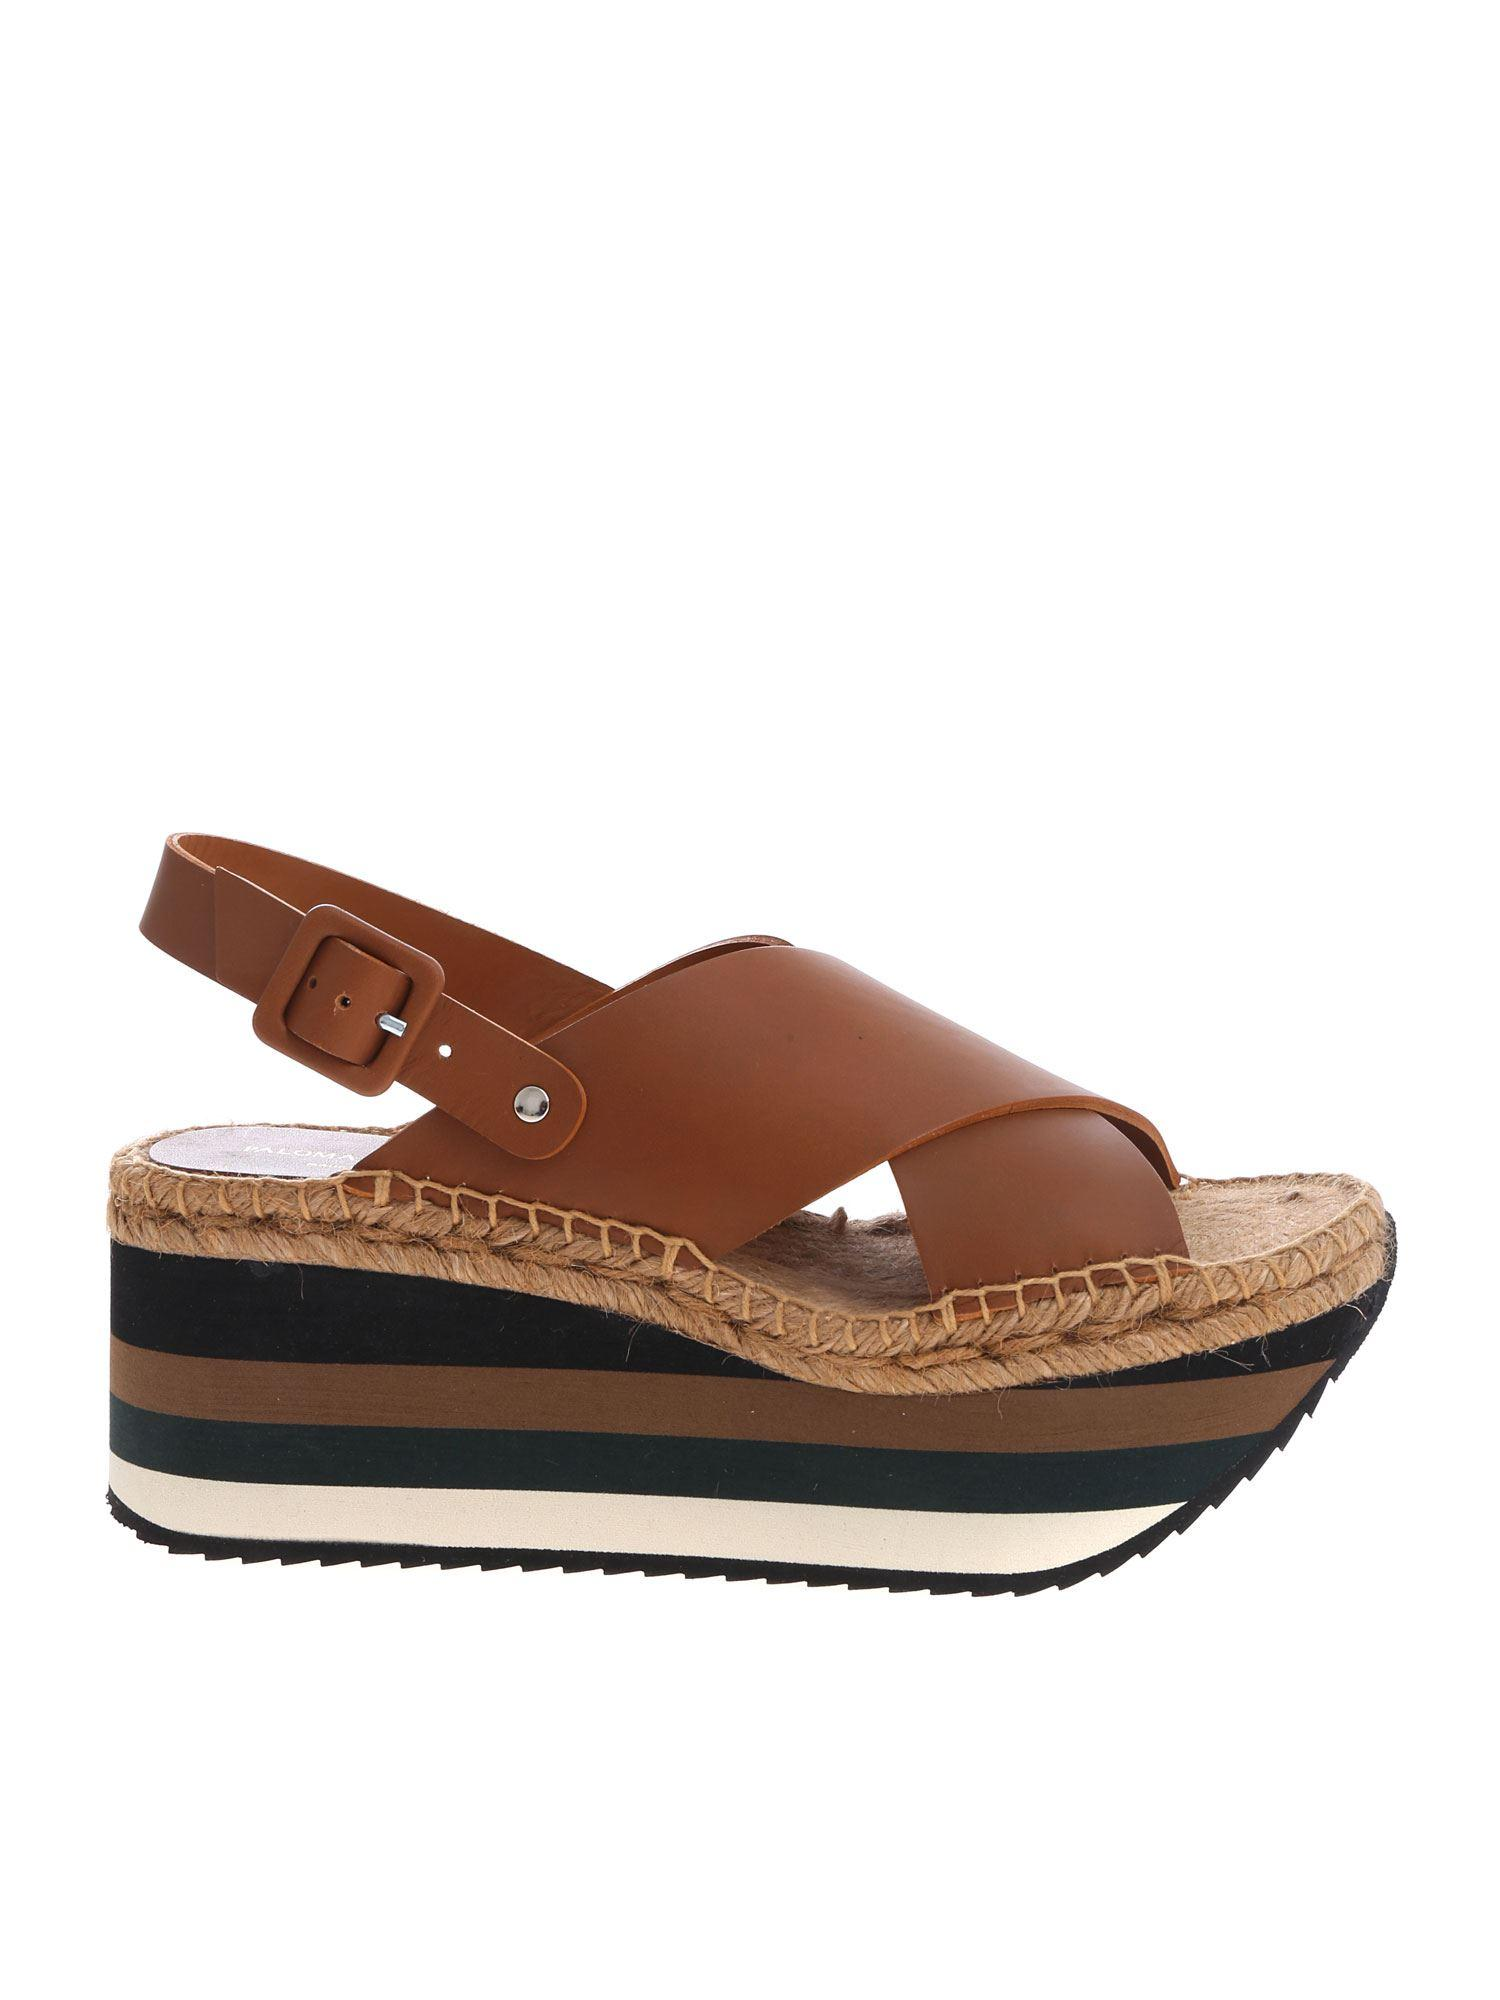 f5657d17859 Paloma Barceló. Women s Brown Kyoto Sandals In Leather With Striped Wedge